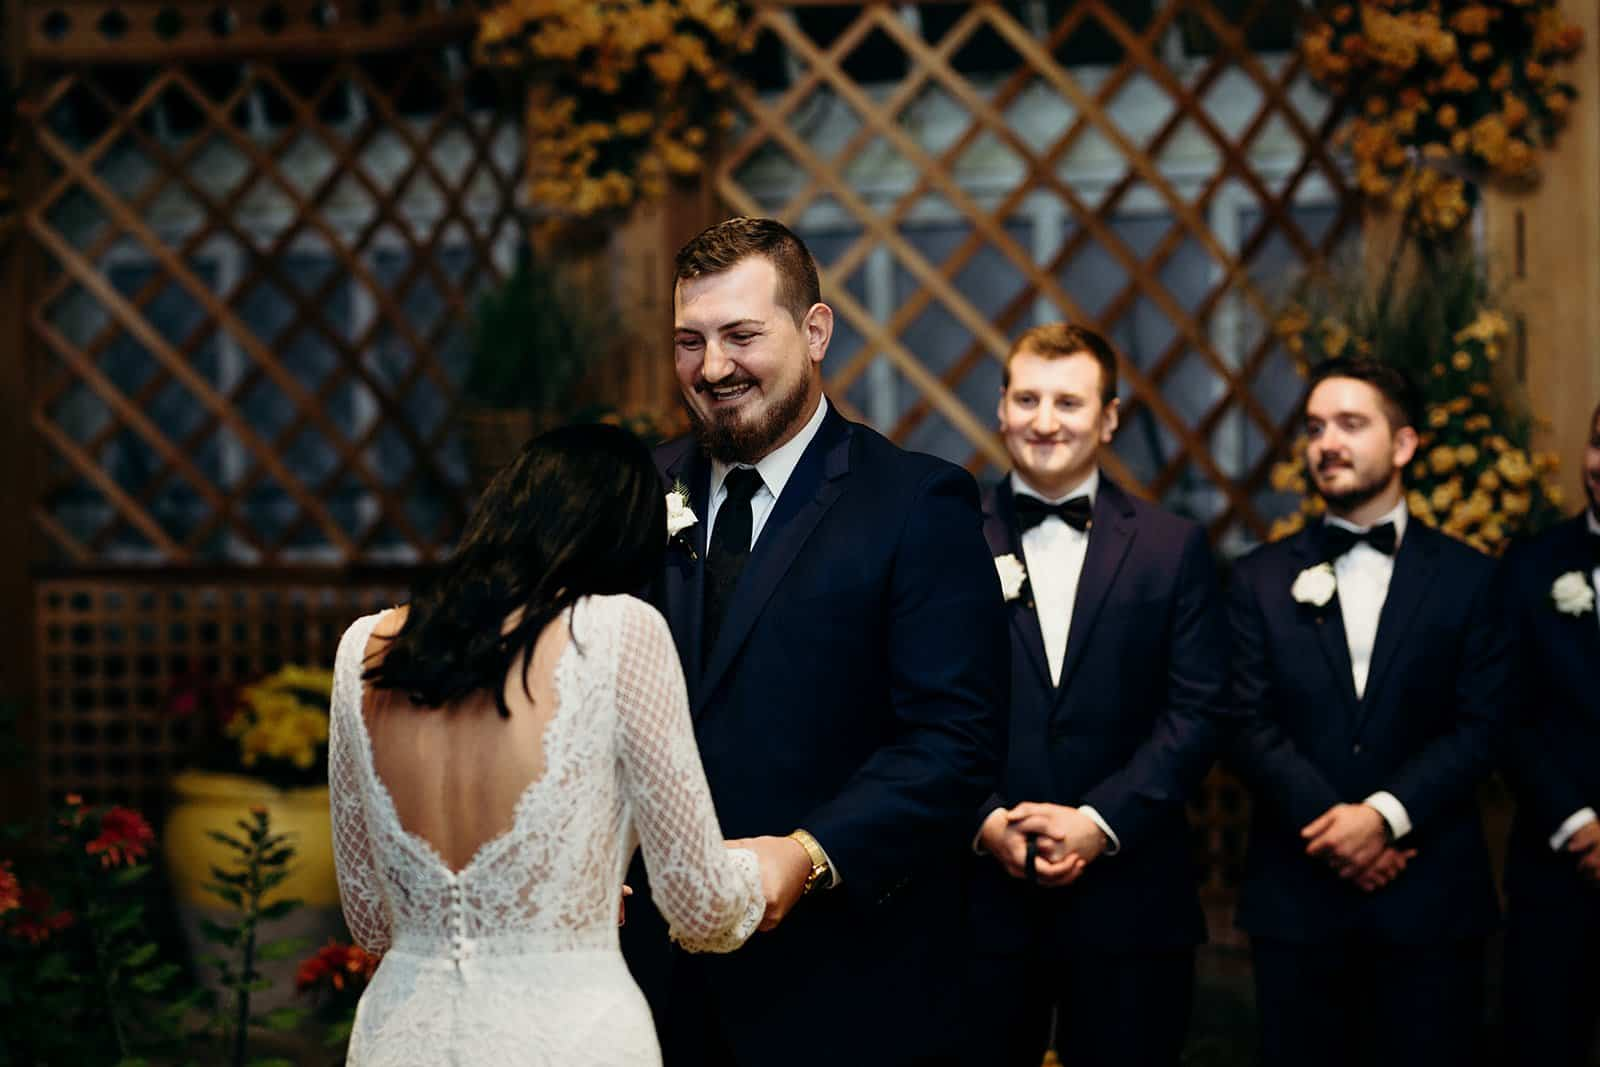 Husband laughs at bride during the ceremony